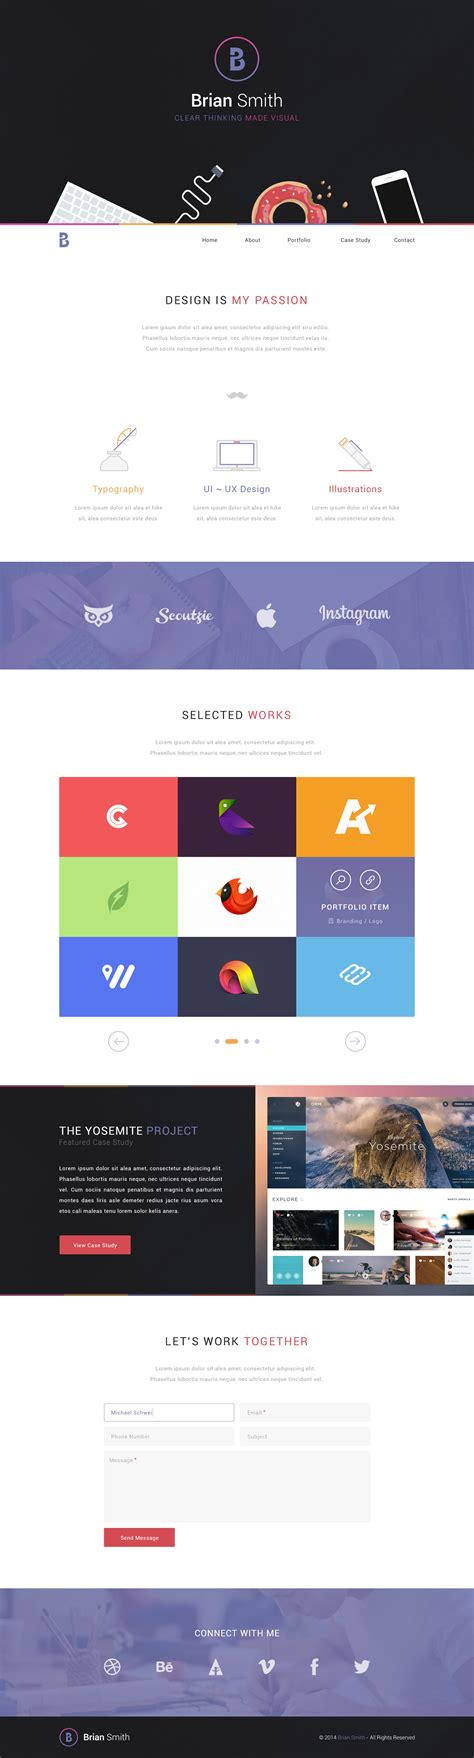 Download Free Psd Template For Bike Store Download Psd Download Free Psd Resources For Simple Store Template